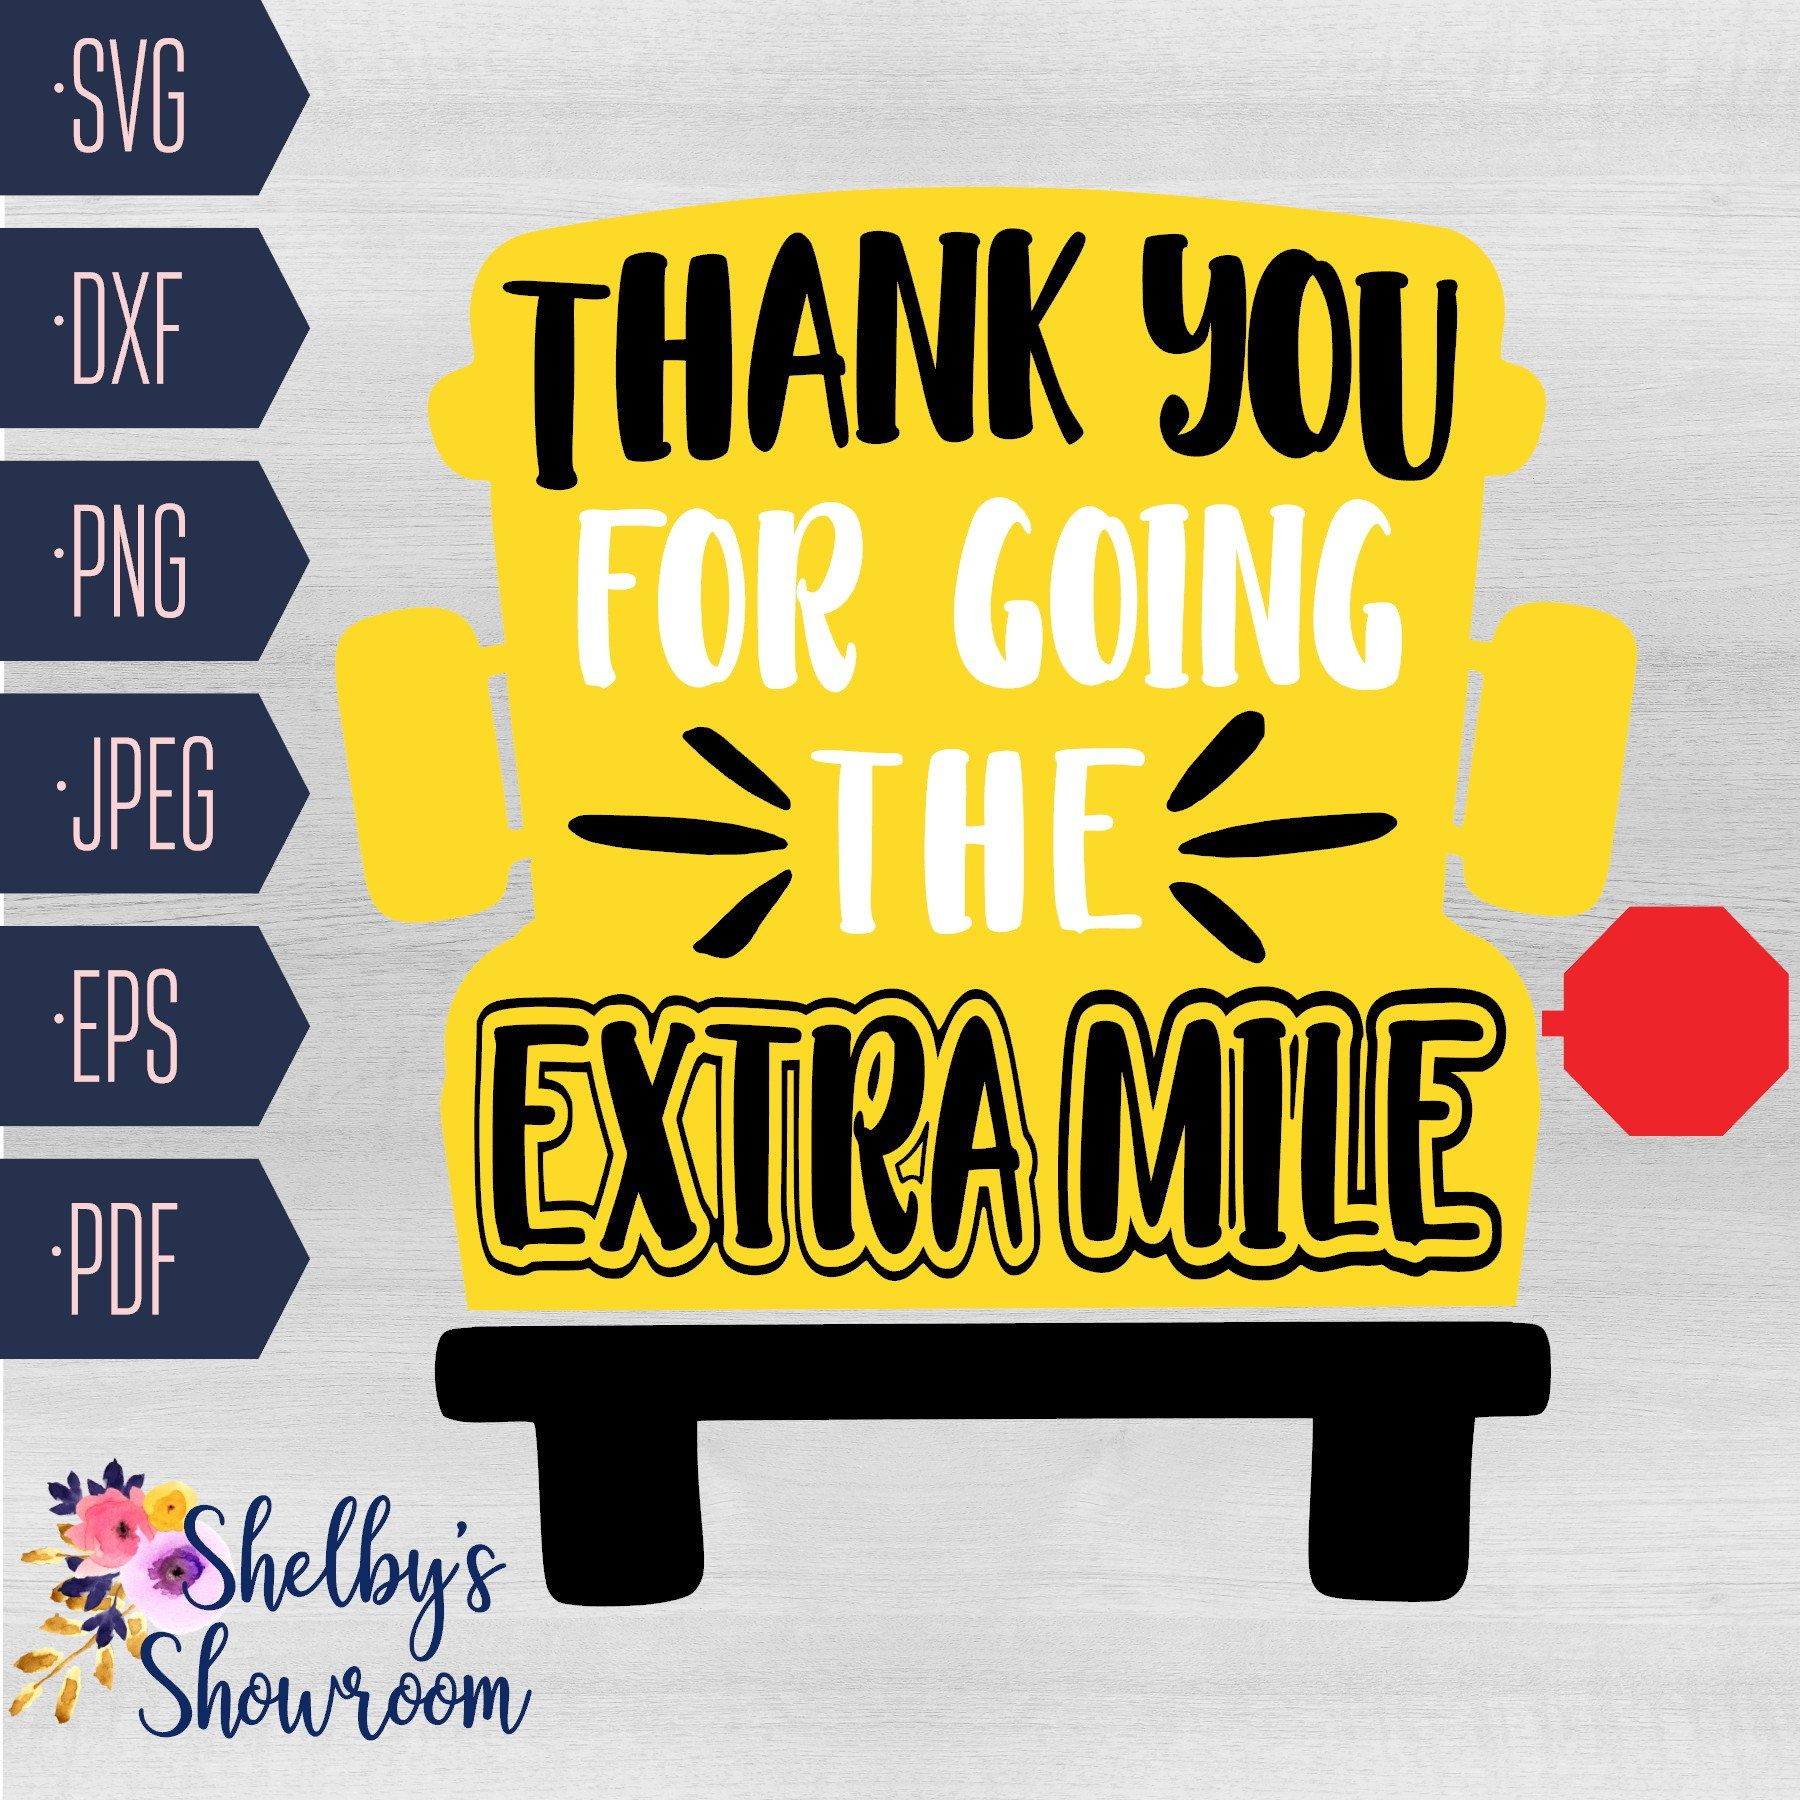 Thank You For Going The Extra Mile Svg Thanks For Going The Etsy In 2020 Bus Driver Appreciation Bus Driver Gifts School Bus Driver Appreciation